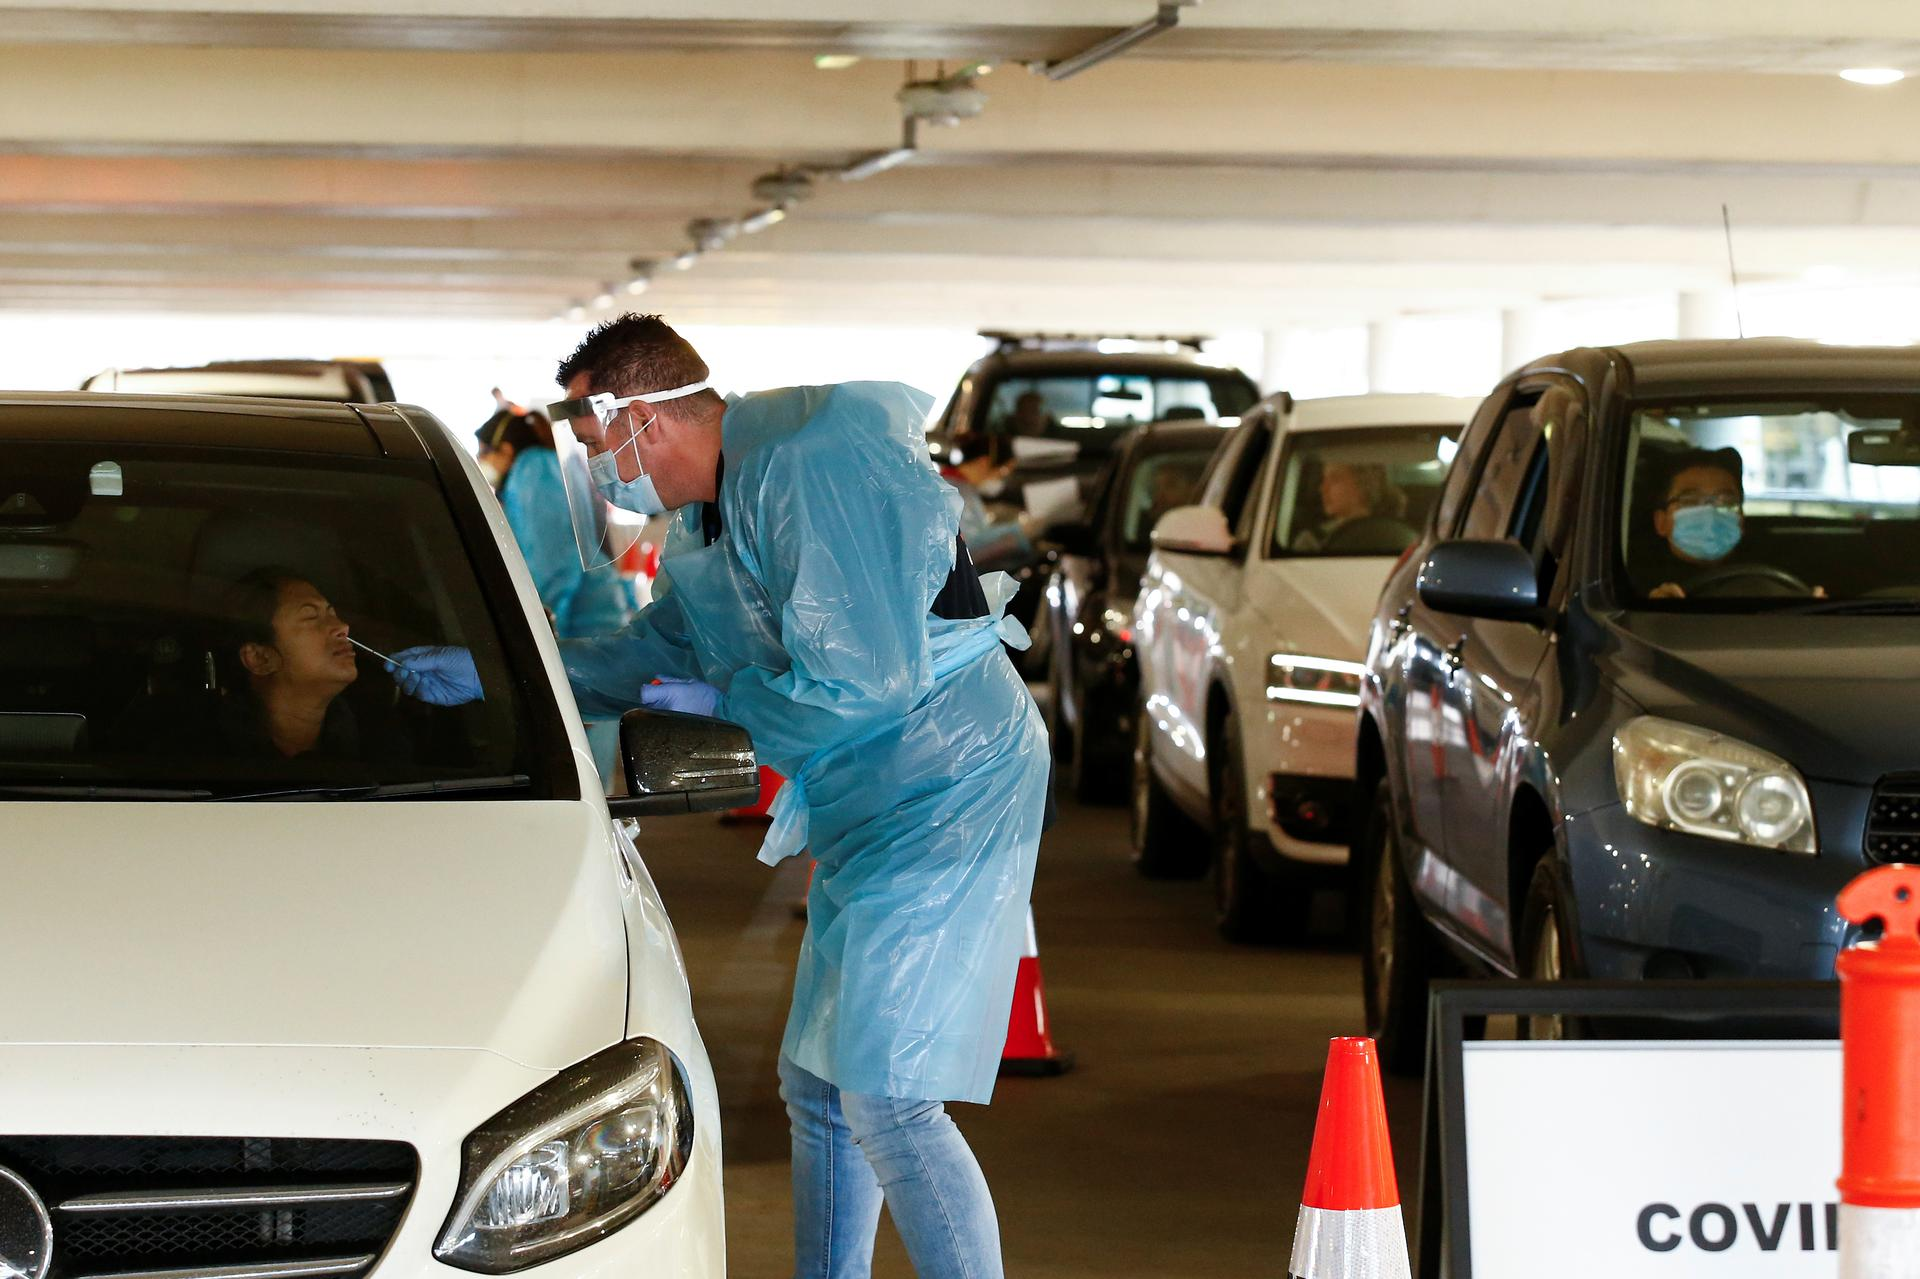 Australia sees biggest daily rise in COVID-19 cases in two months